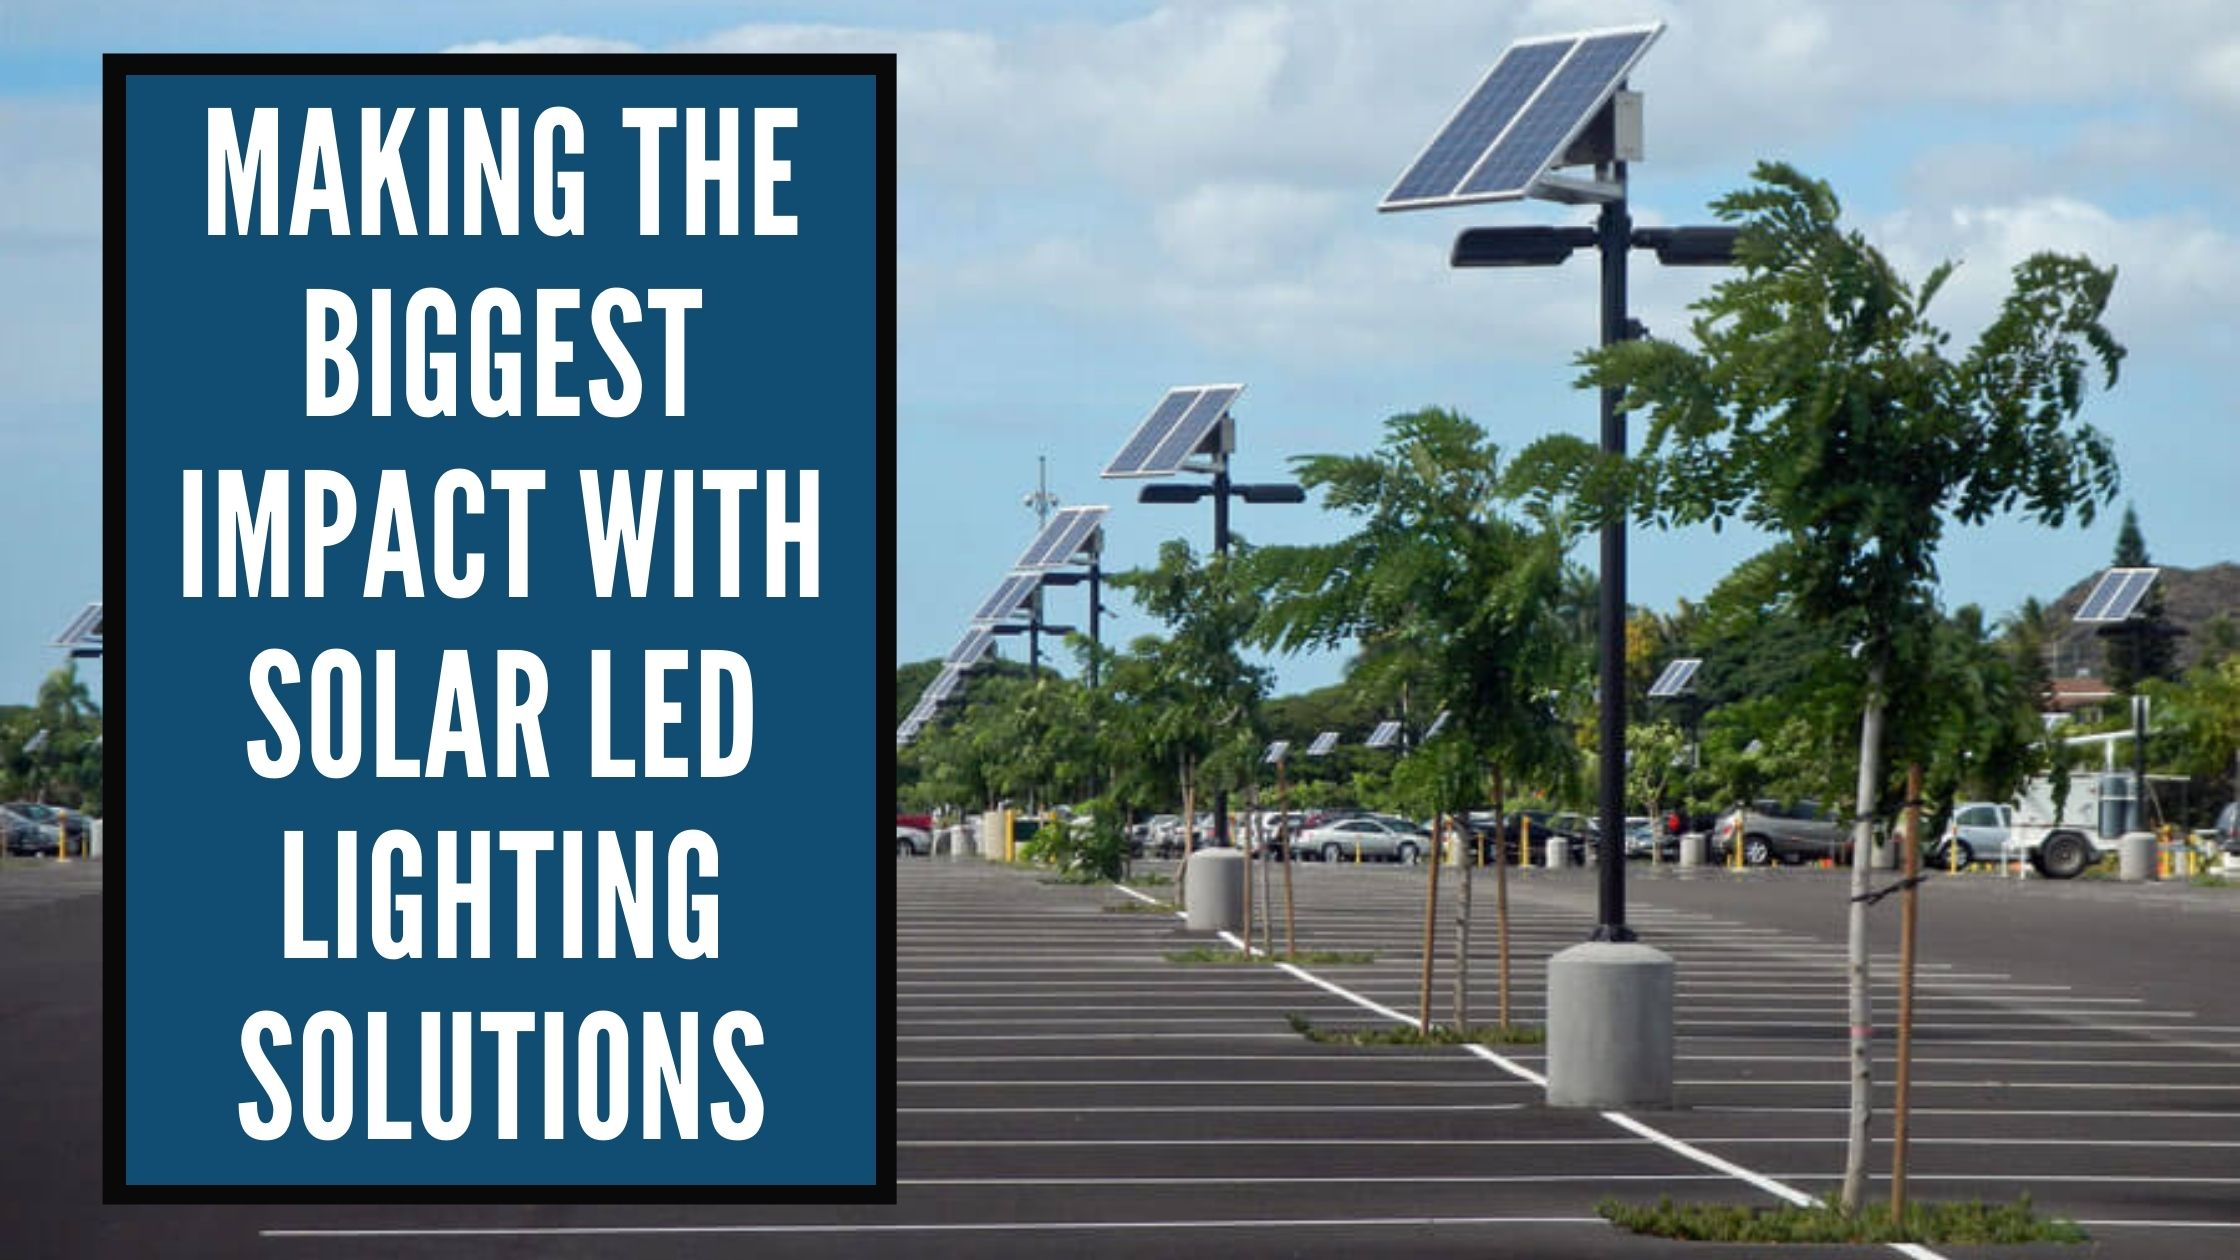 Making the Biggest Impact with Solar LED Lighting Solutions